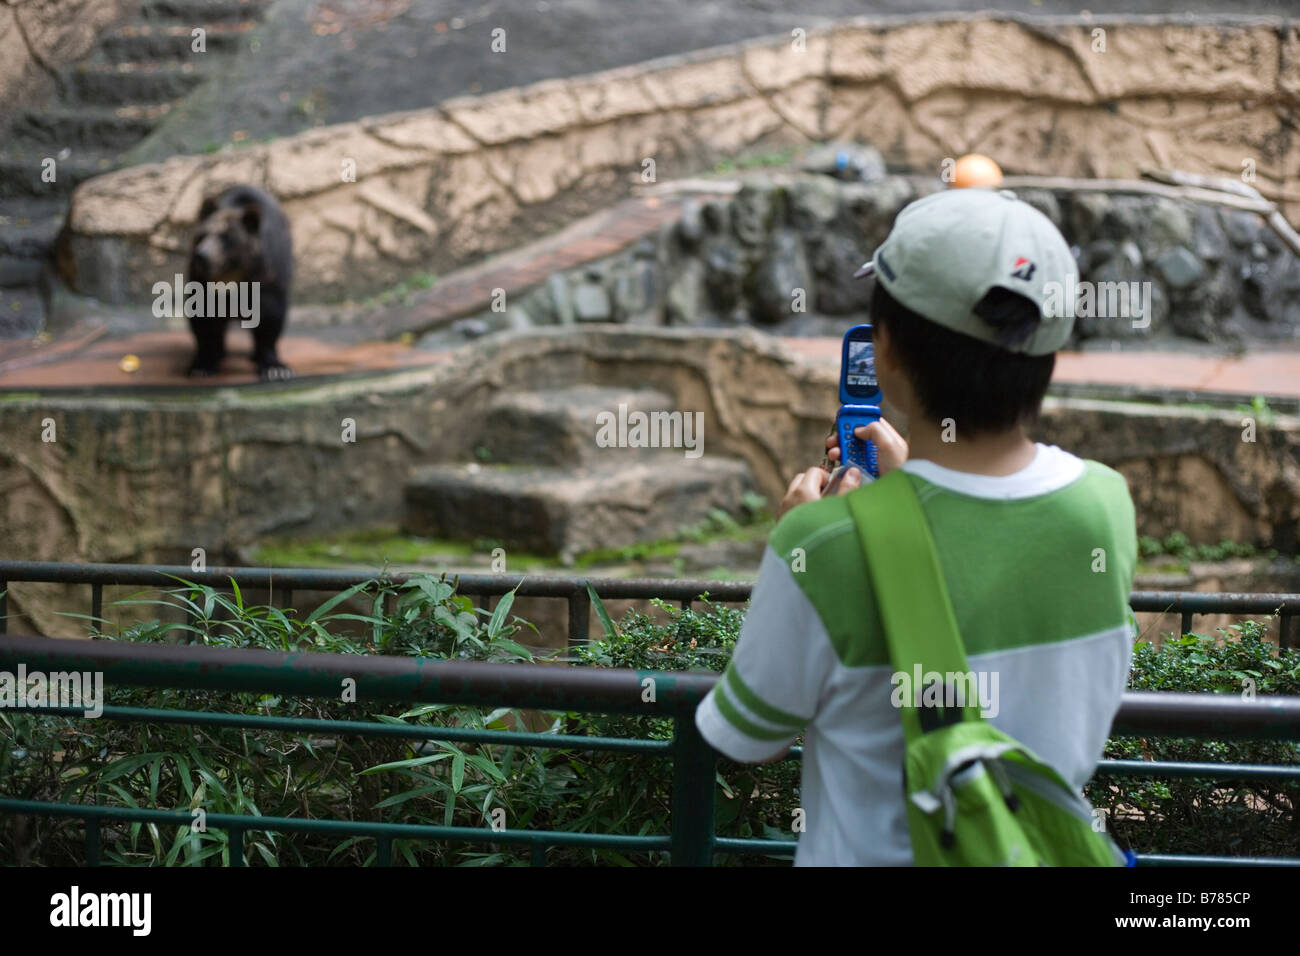 young Japanese boy taking picture of bear at Tokyo zoo using his cell phone Stock Photo